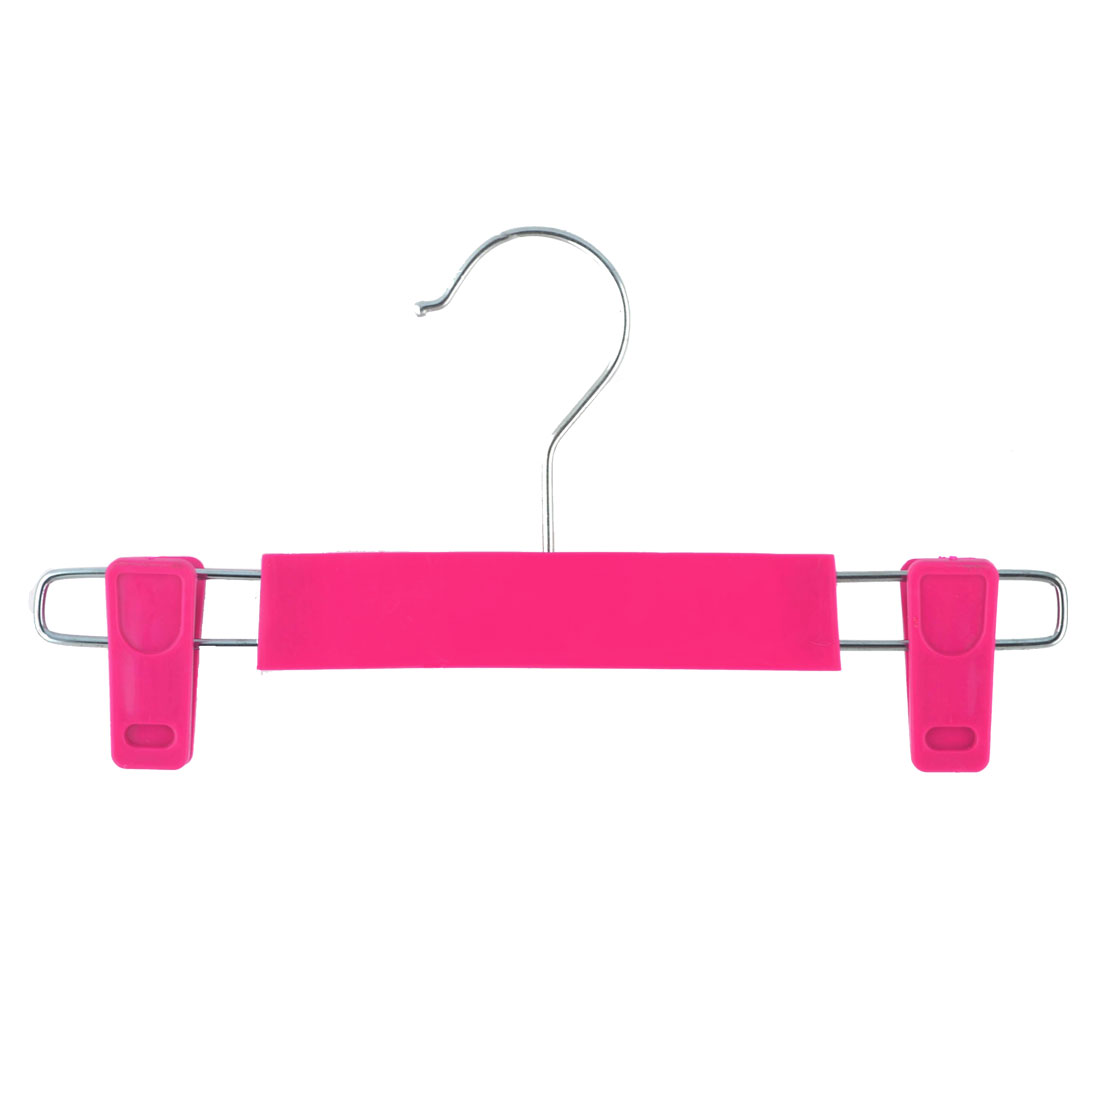 Home Wardrobe Plastic Double Clips Suits Pants Clothes Clothing Hanger Hook Fuchsia